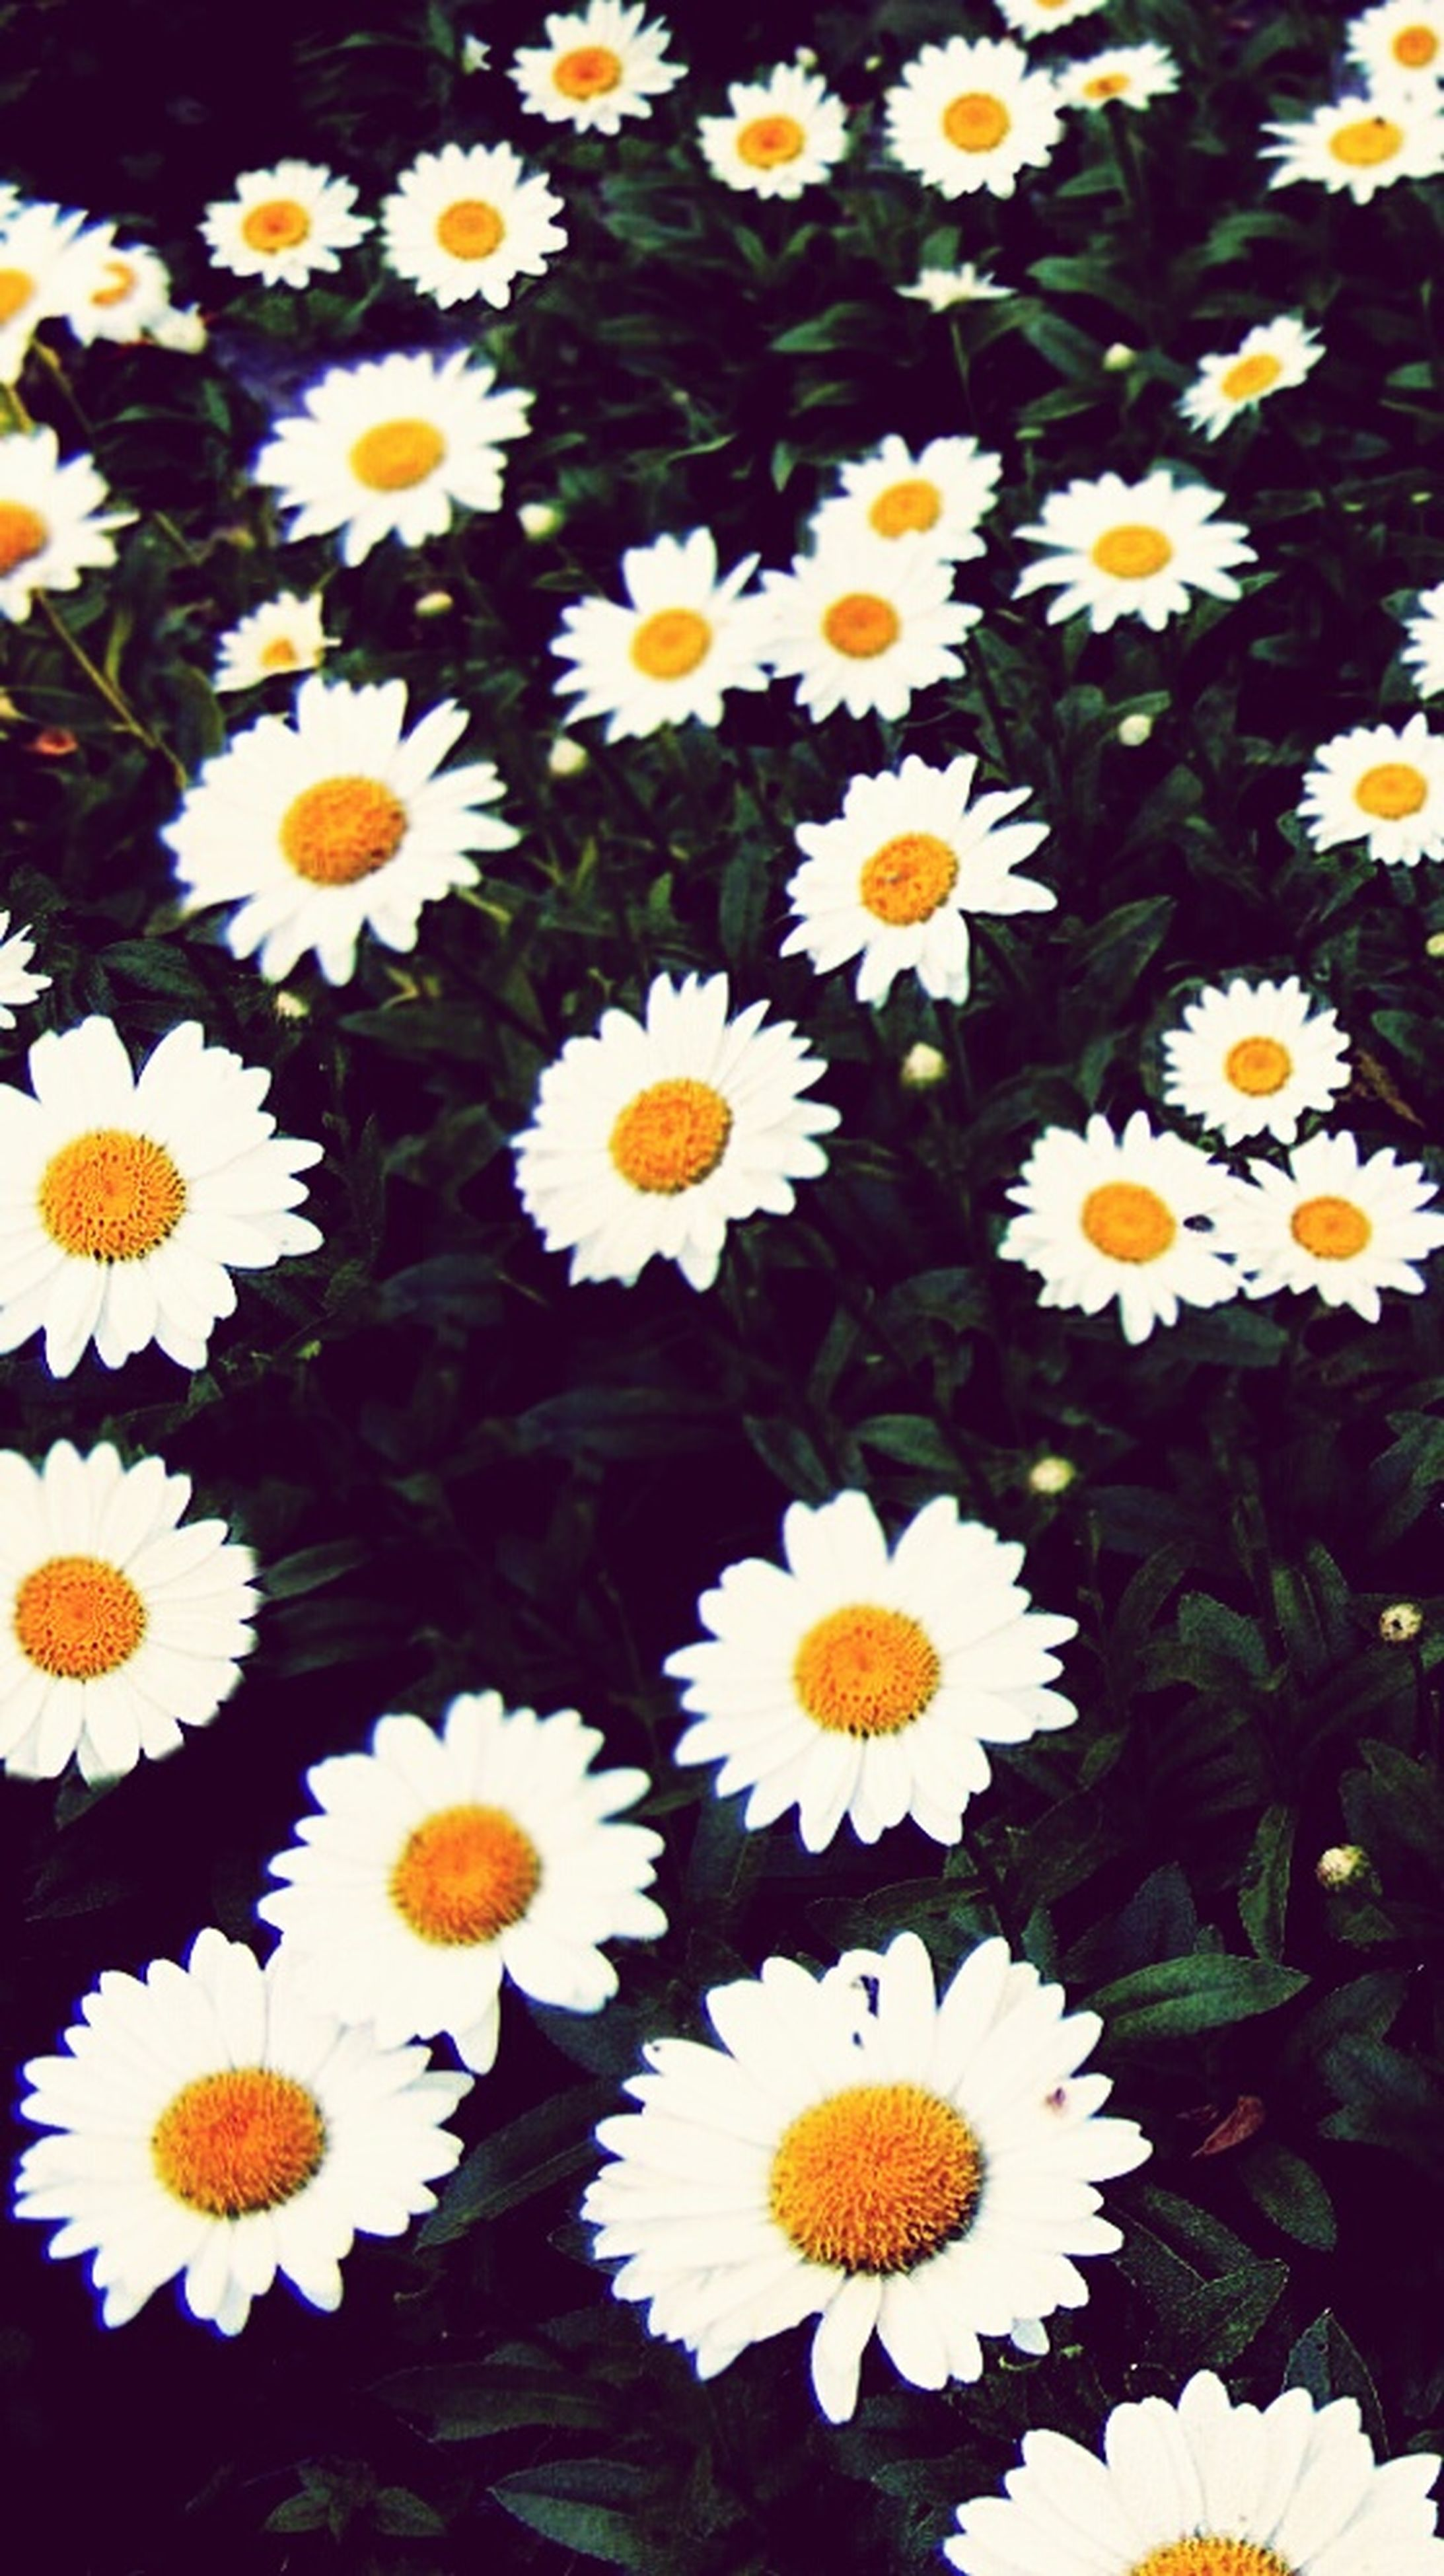 flower, daisy, freshness, fragility, petal, growth, yellow, flower head, white color, beauty in nature, nature, high angle view, blooming, plant, pollen, field, in bloom, abundance, blossom, leaf